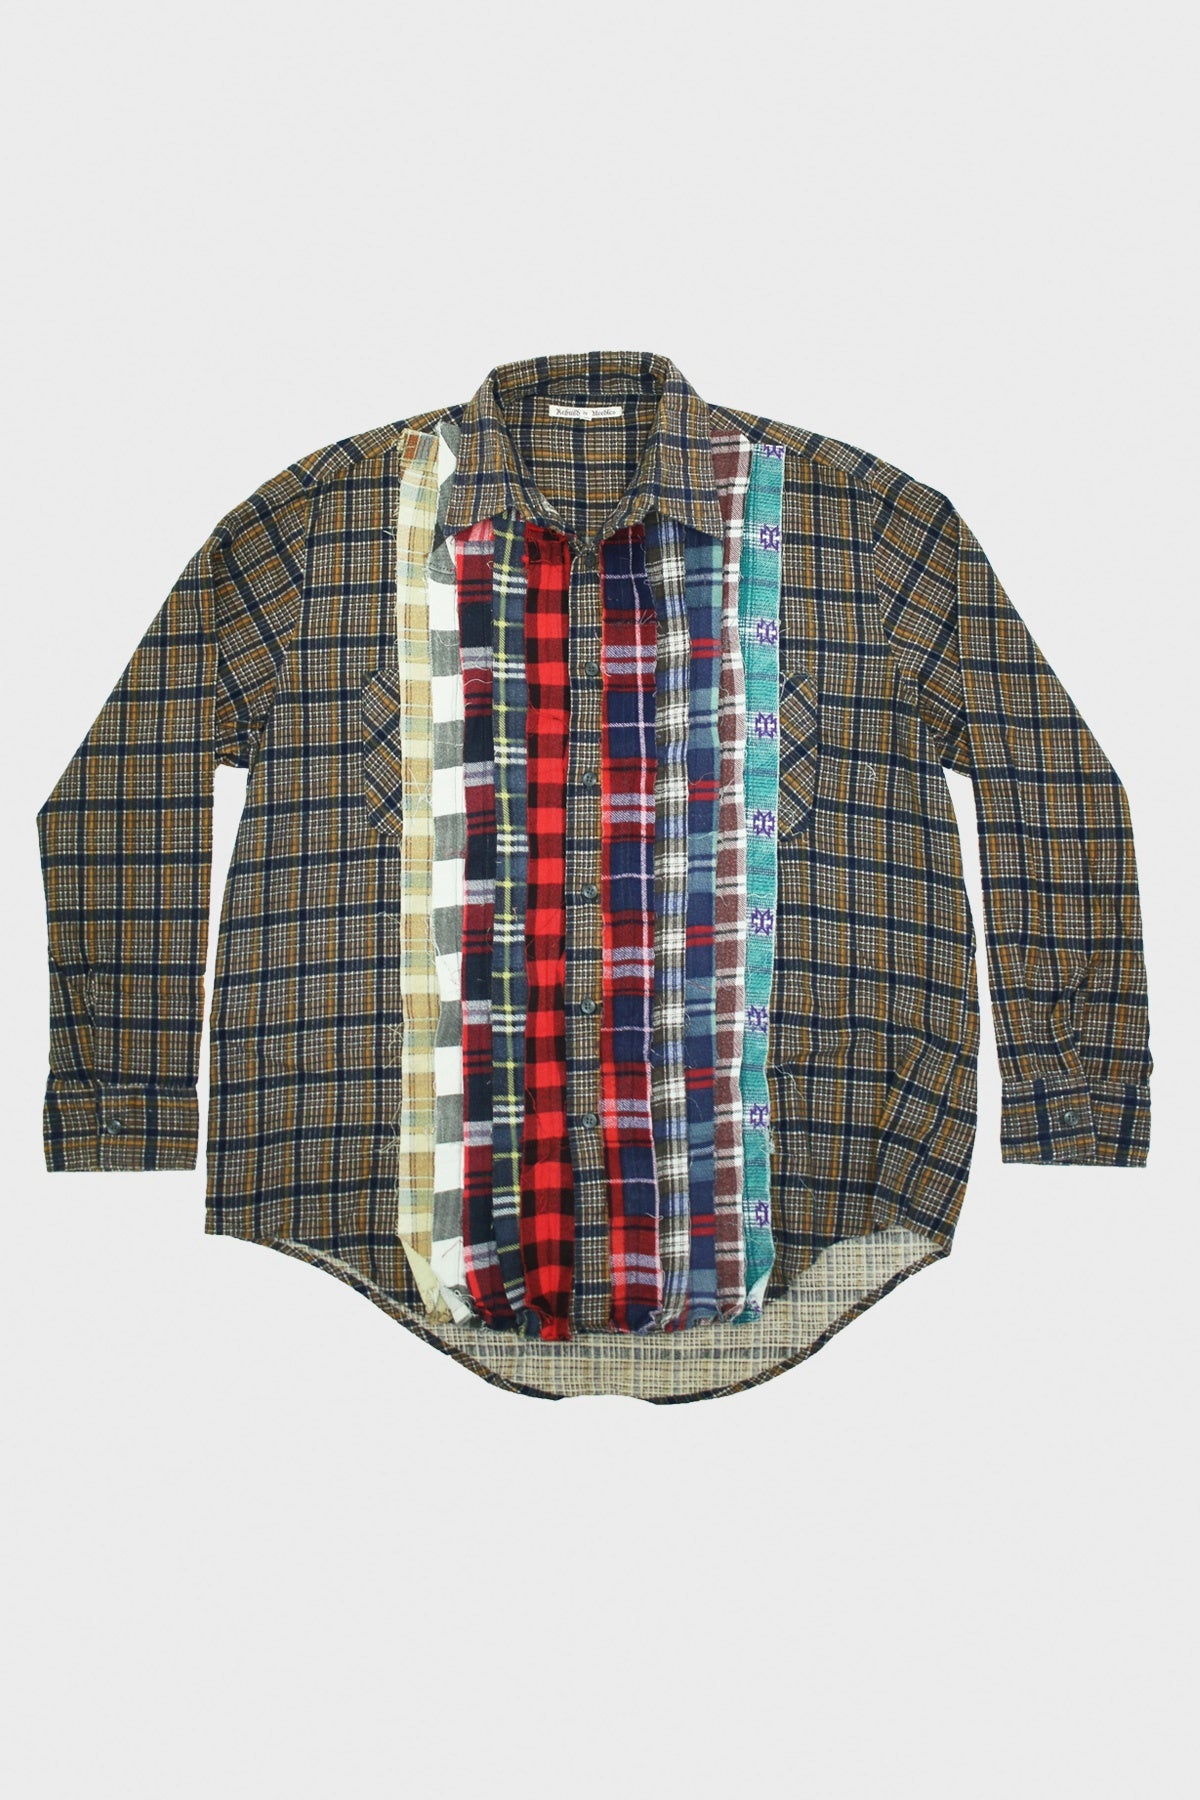 Needles - Ribbon Flannel Shirt - Assorted 14 - X Large - Canoe Club